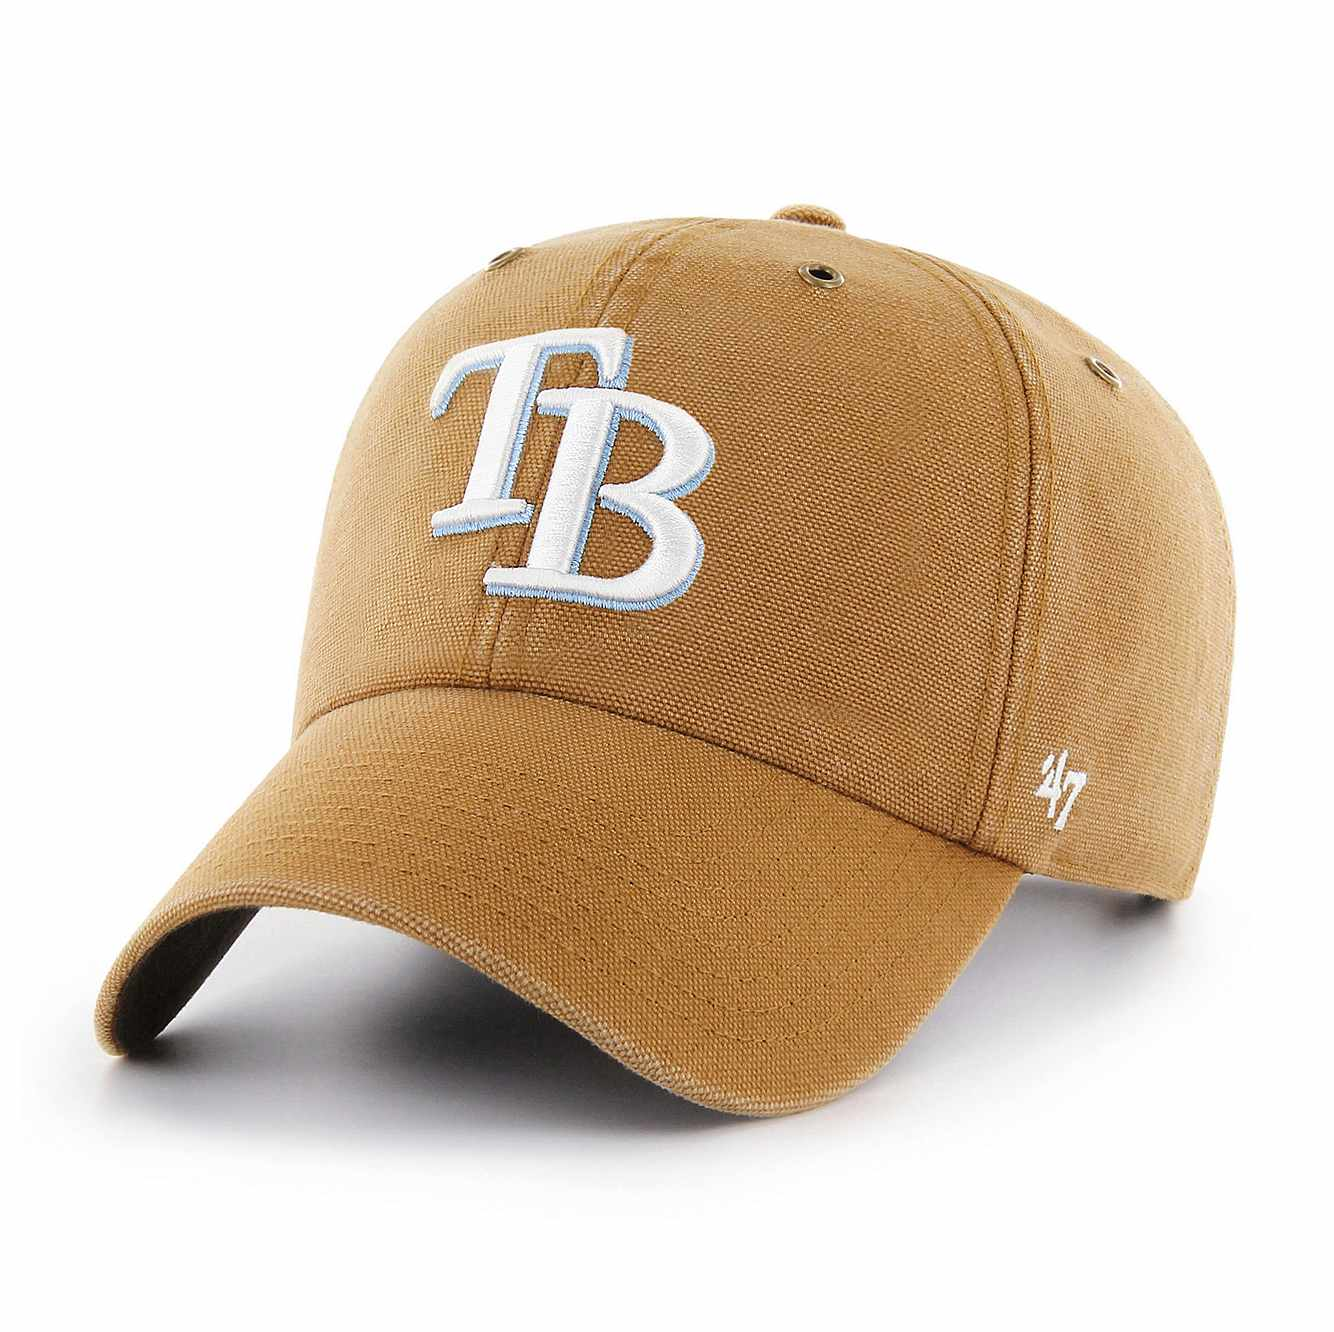 Picture of Tampa Bay Rays Carhartt x '47 Clean Up in Carhartt Brown